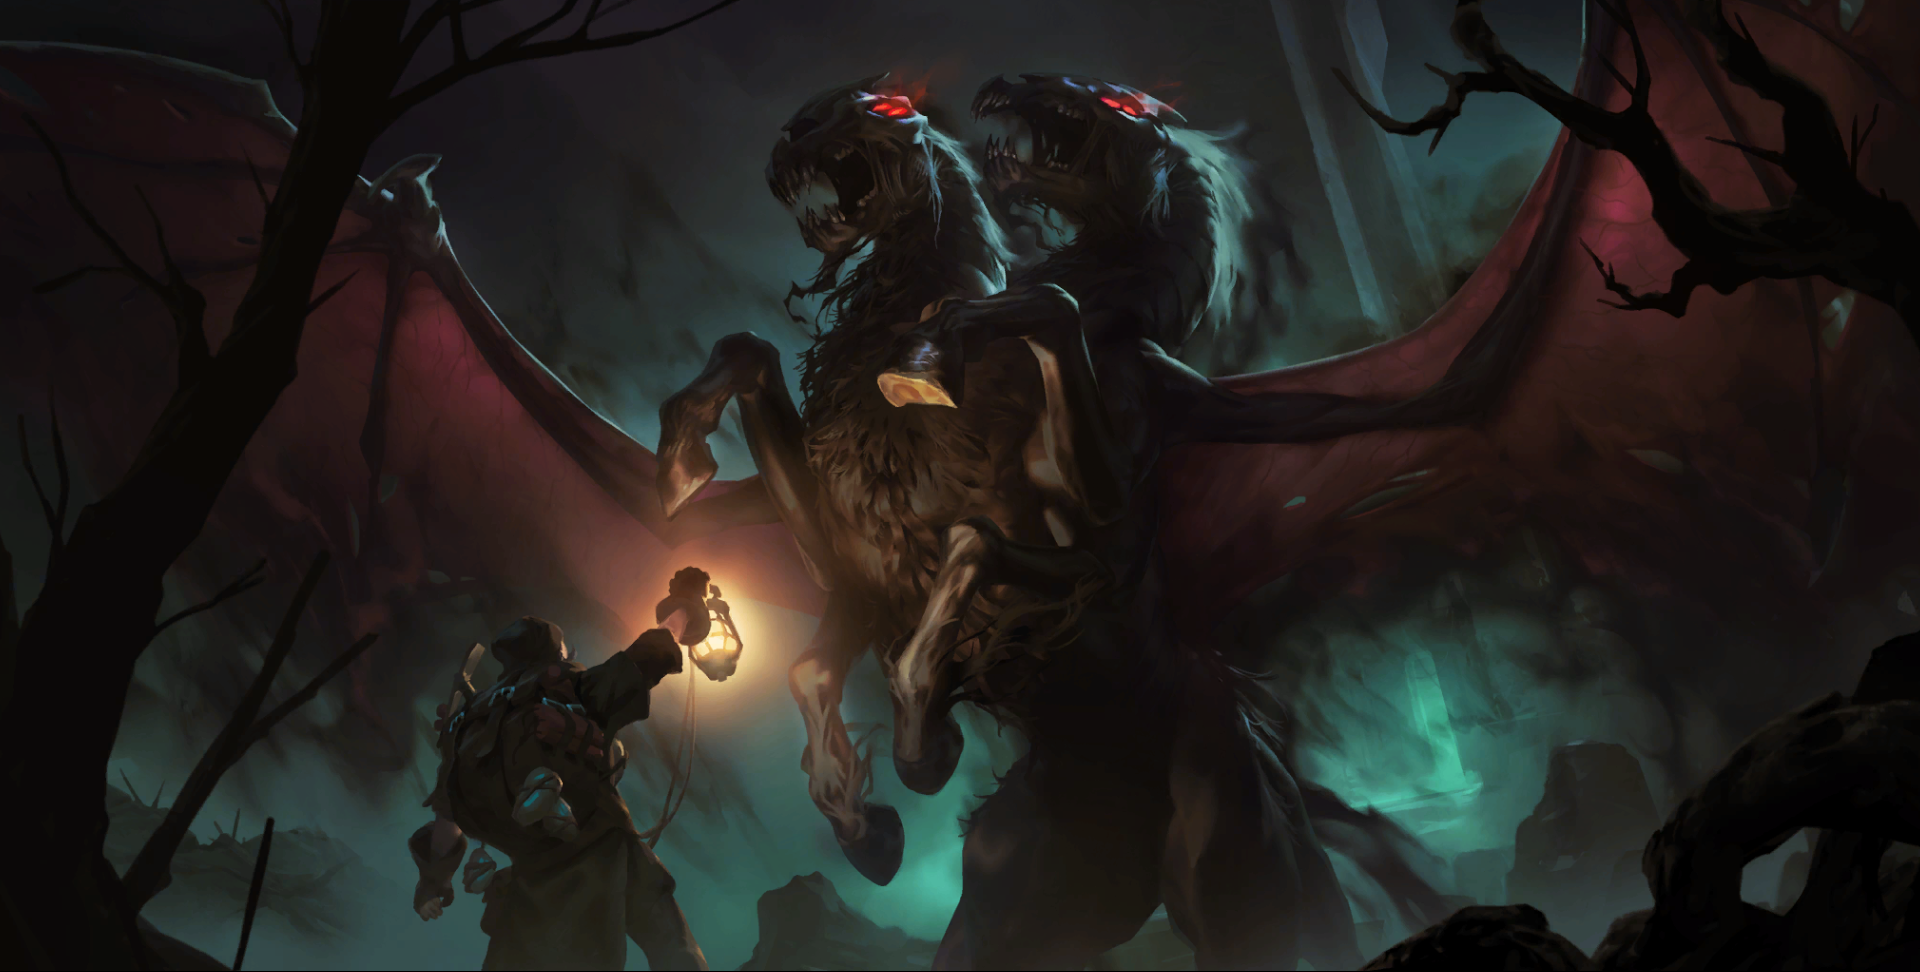 League Of Legends League Of Legends Wild Rift Wild Rift Legends Of Runeterra 1920x972